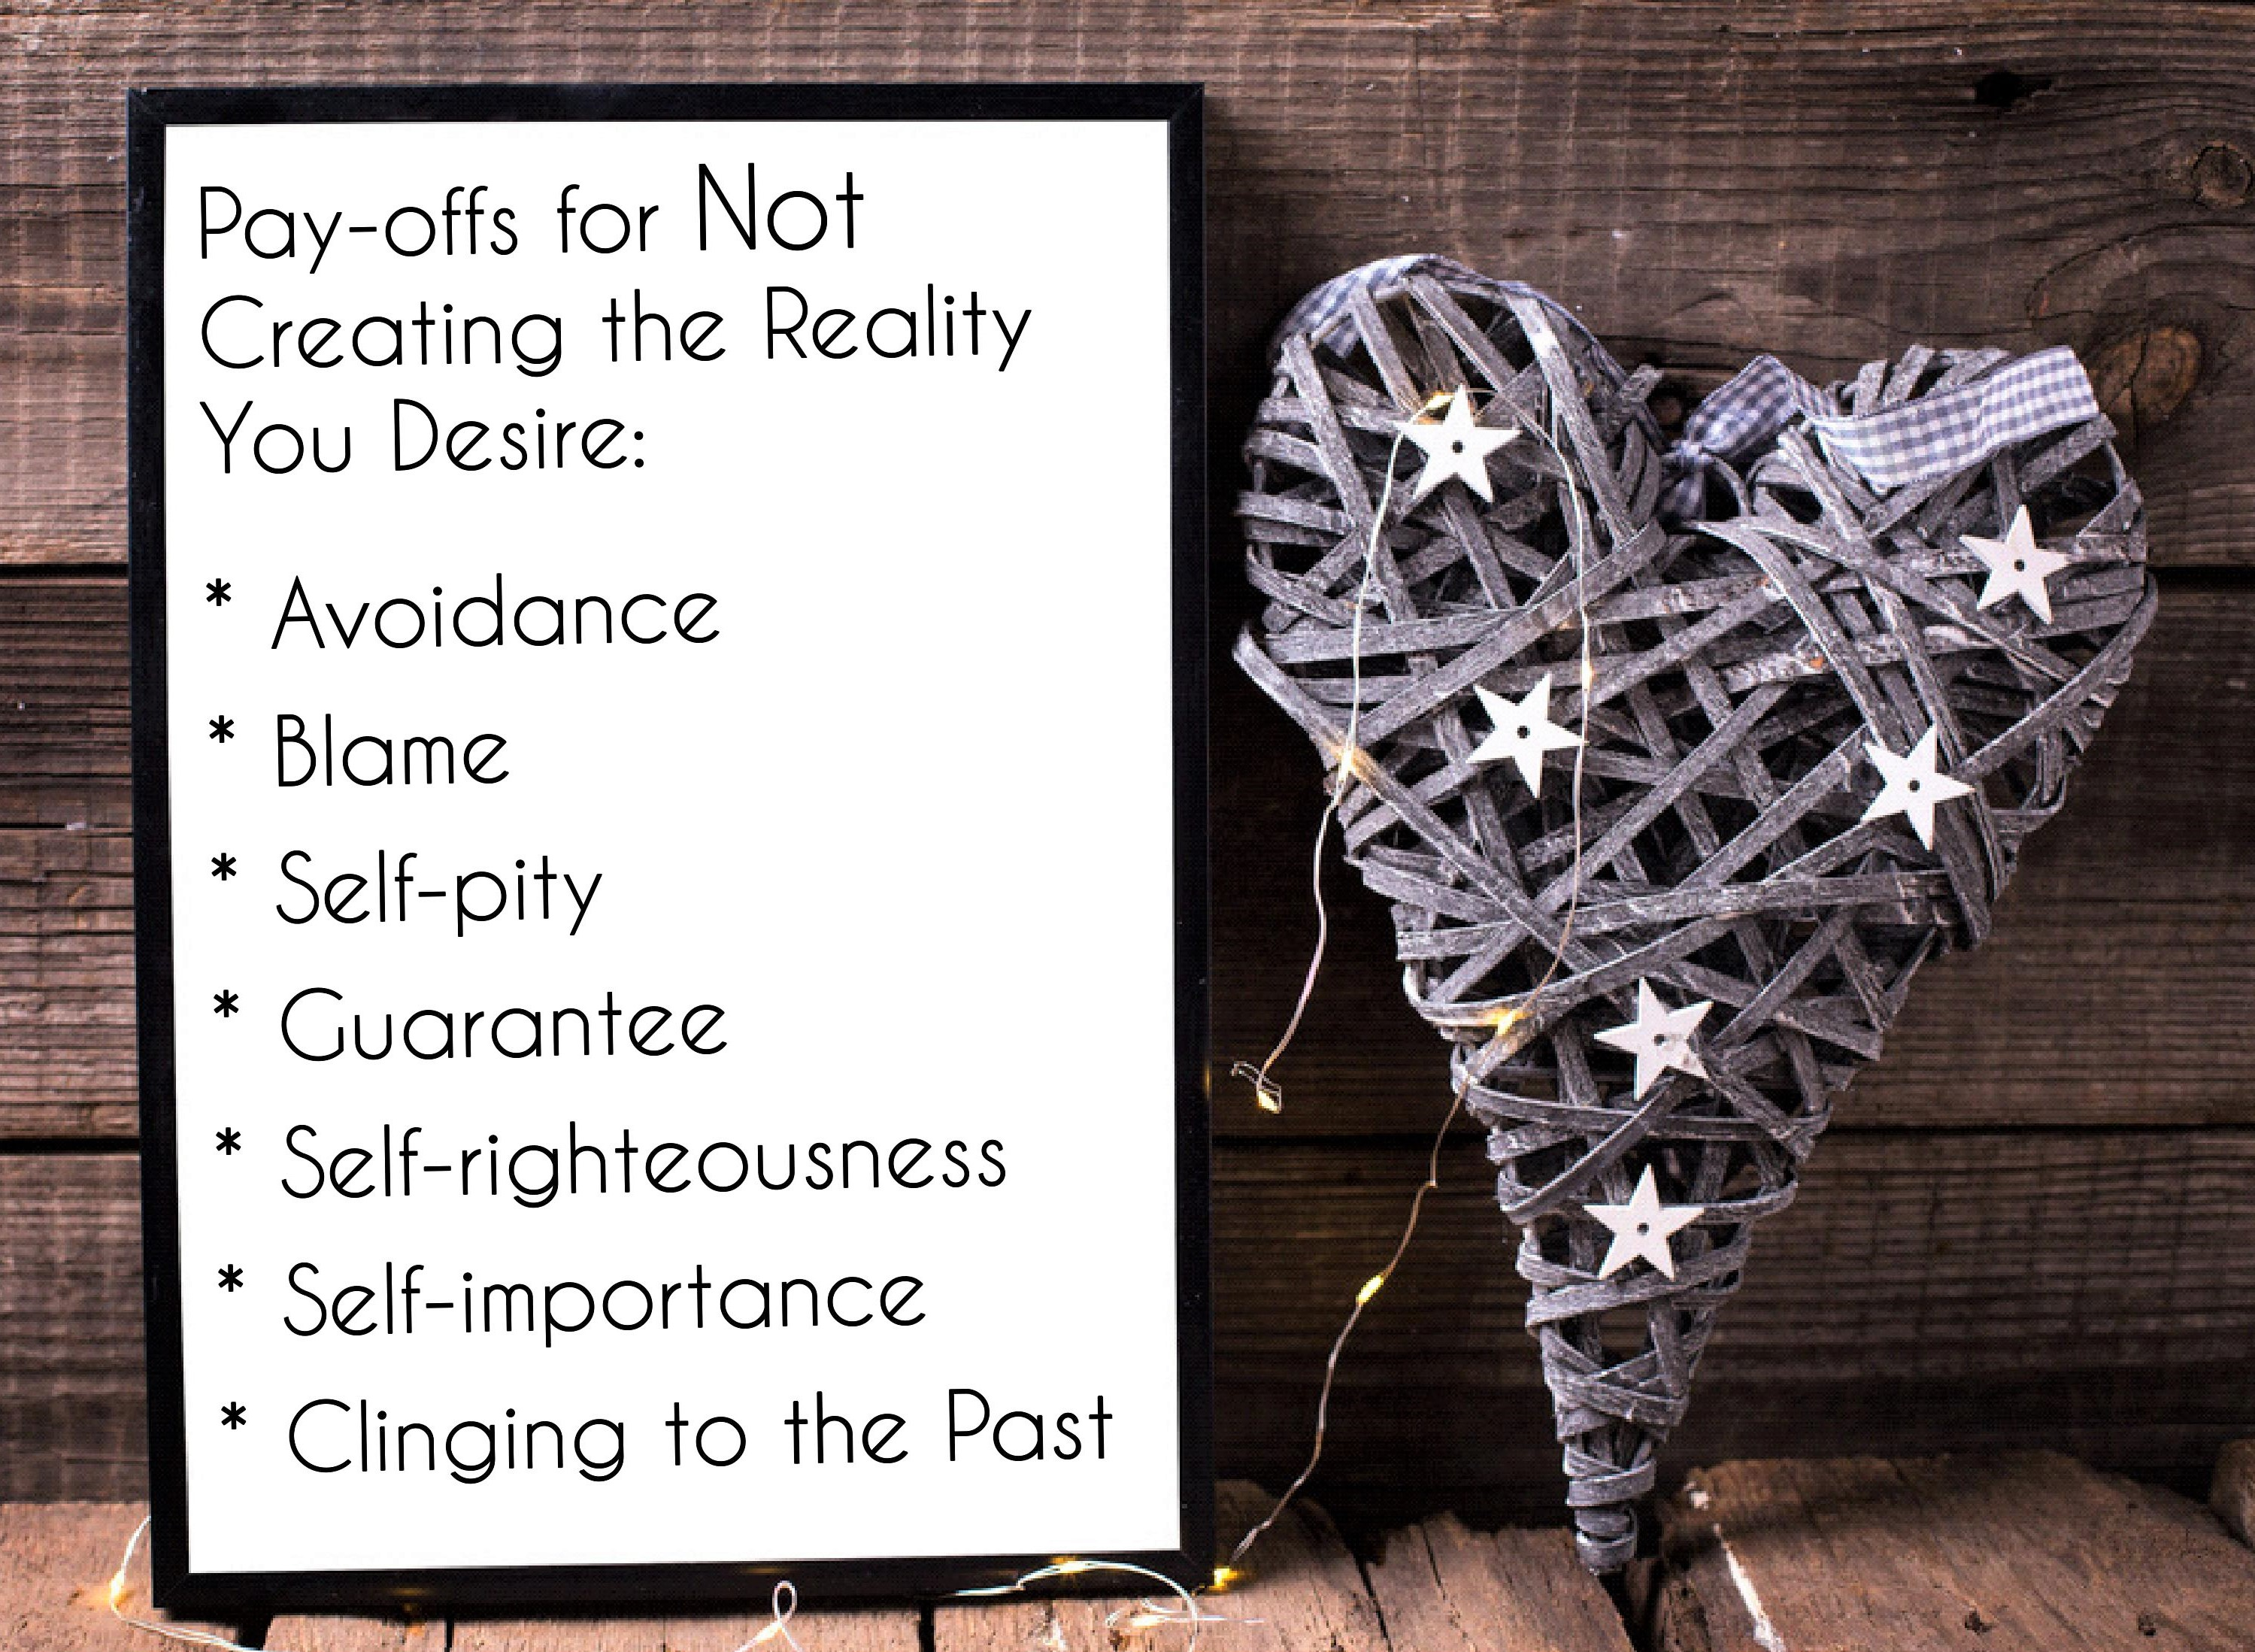 Pay-offs for not creating the reality you desire